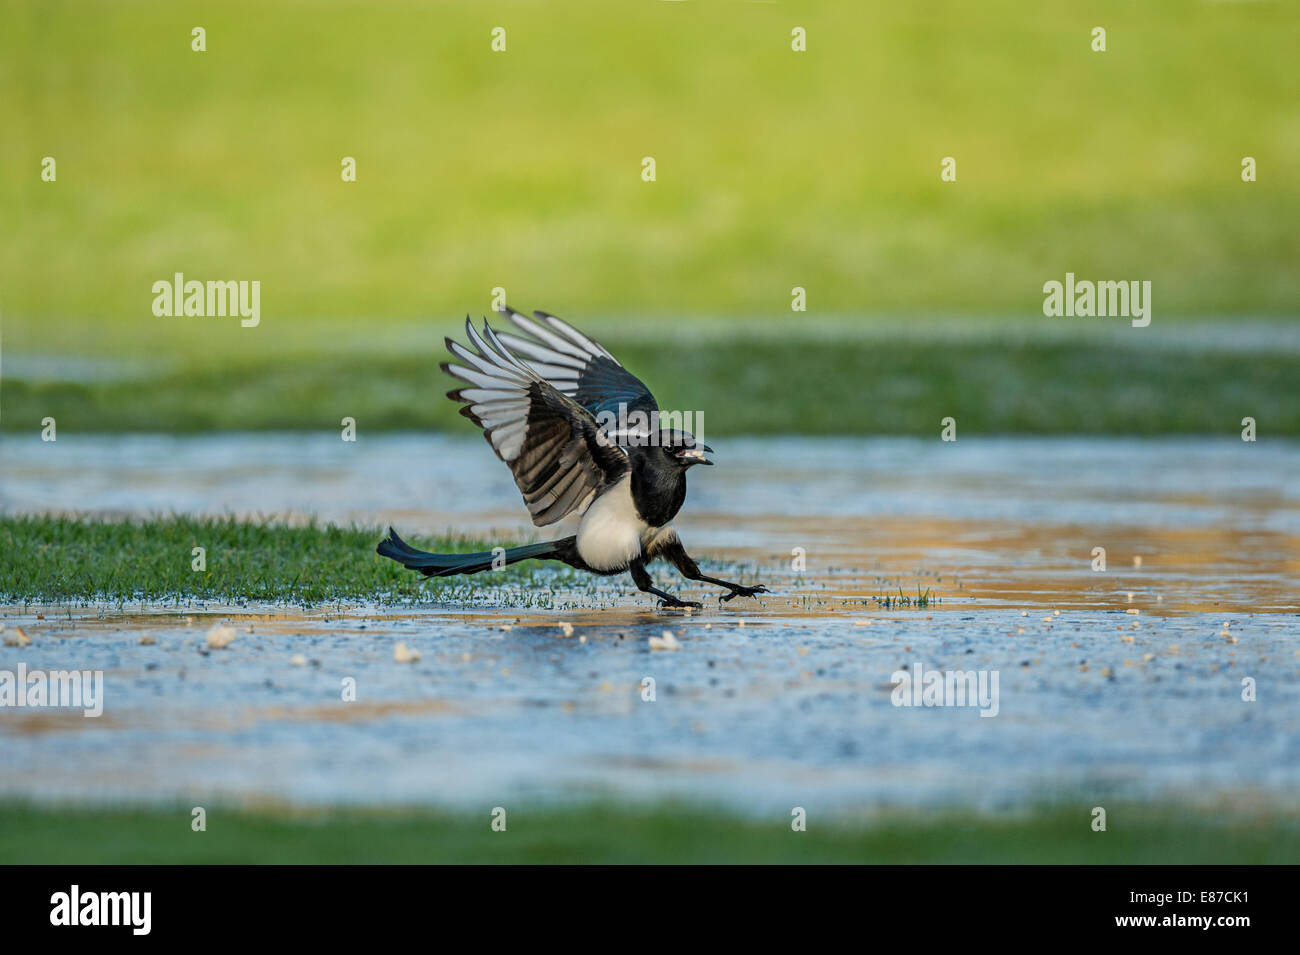 A Magpie slipping on the ice - Stock Image